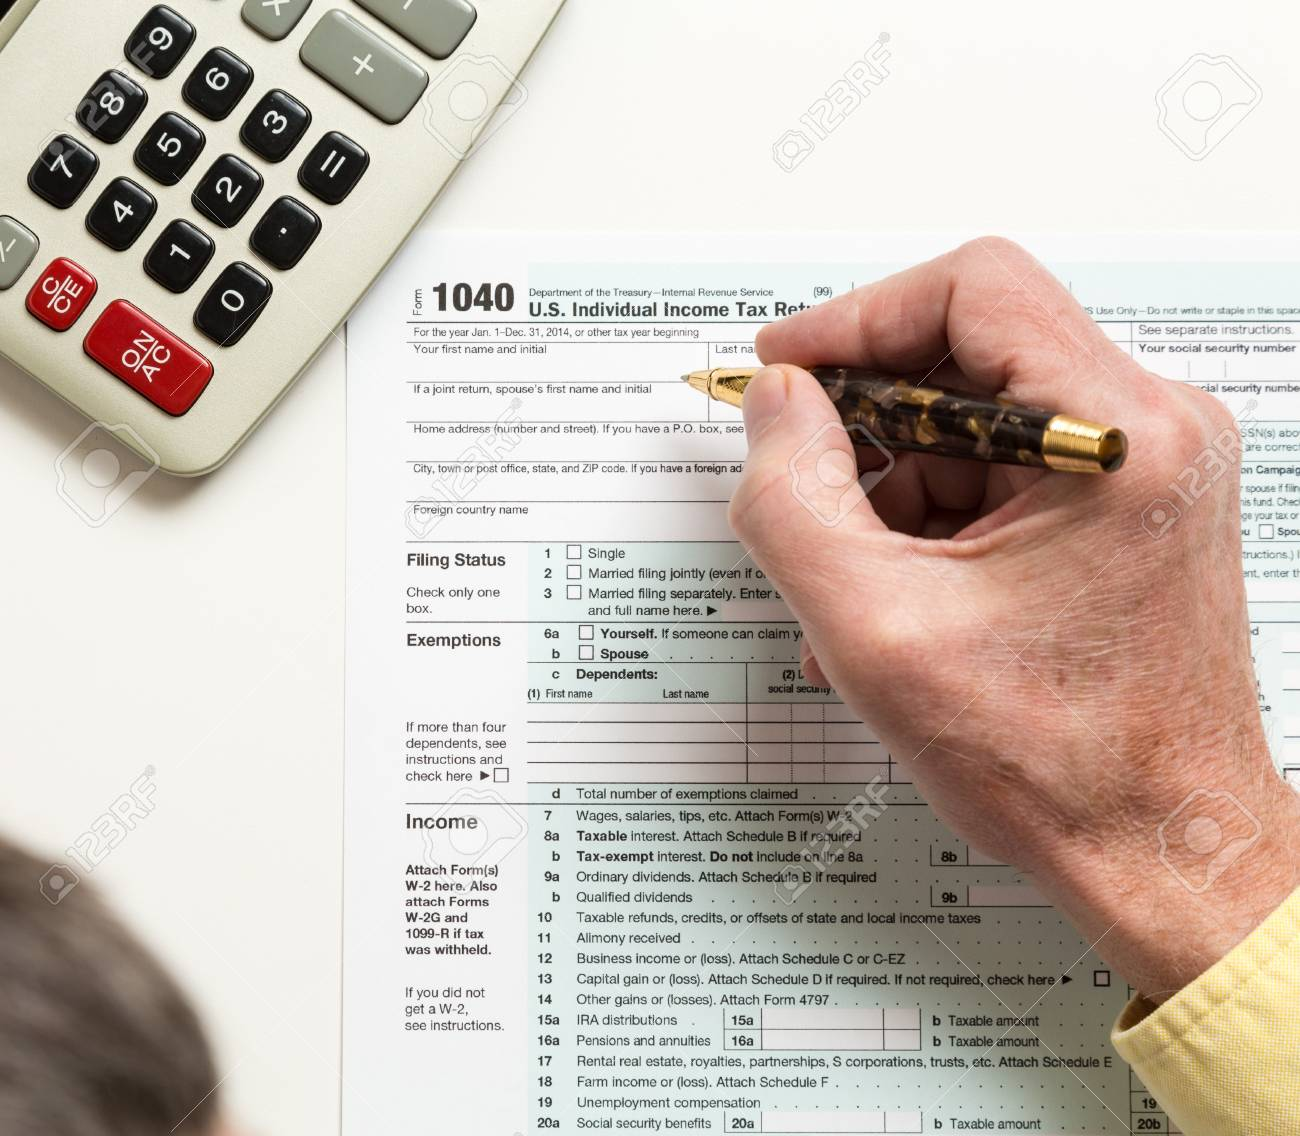 Male caucasian hand holding pen above USA tax form 1040 for year